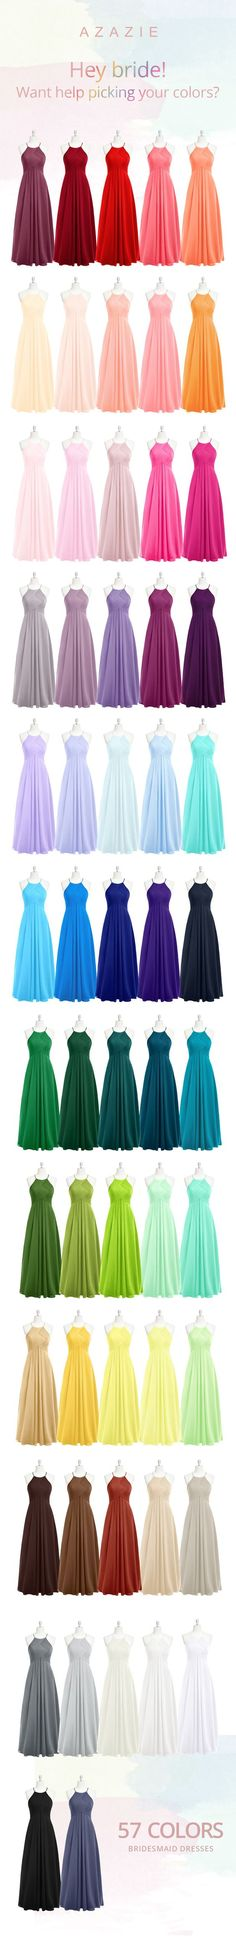 Several colors of bridesmaids dresses and gowns for your bridesmaid to wear as a wedding attendant and beyond. They are budget friendly for weddings, too! Bridesmaid gown colors.